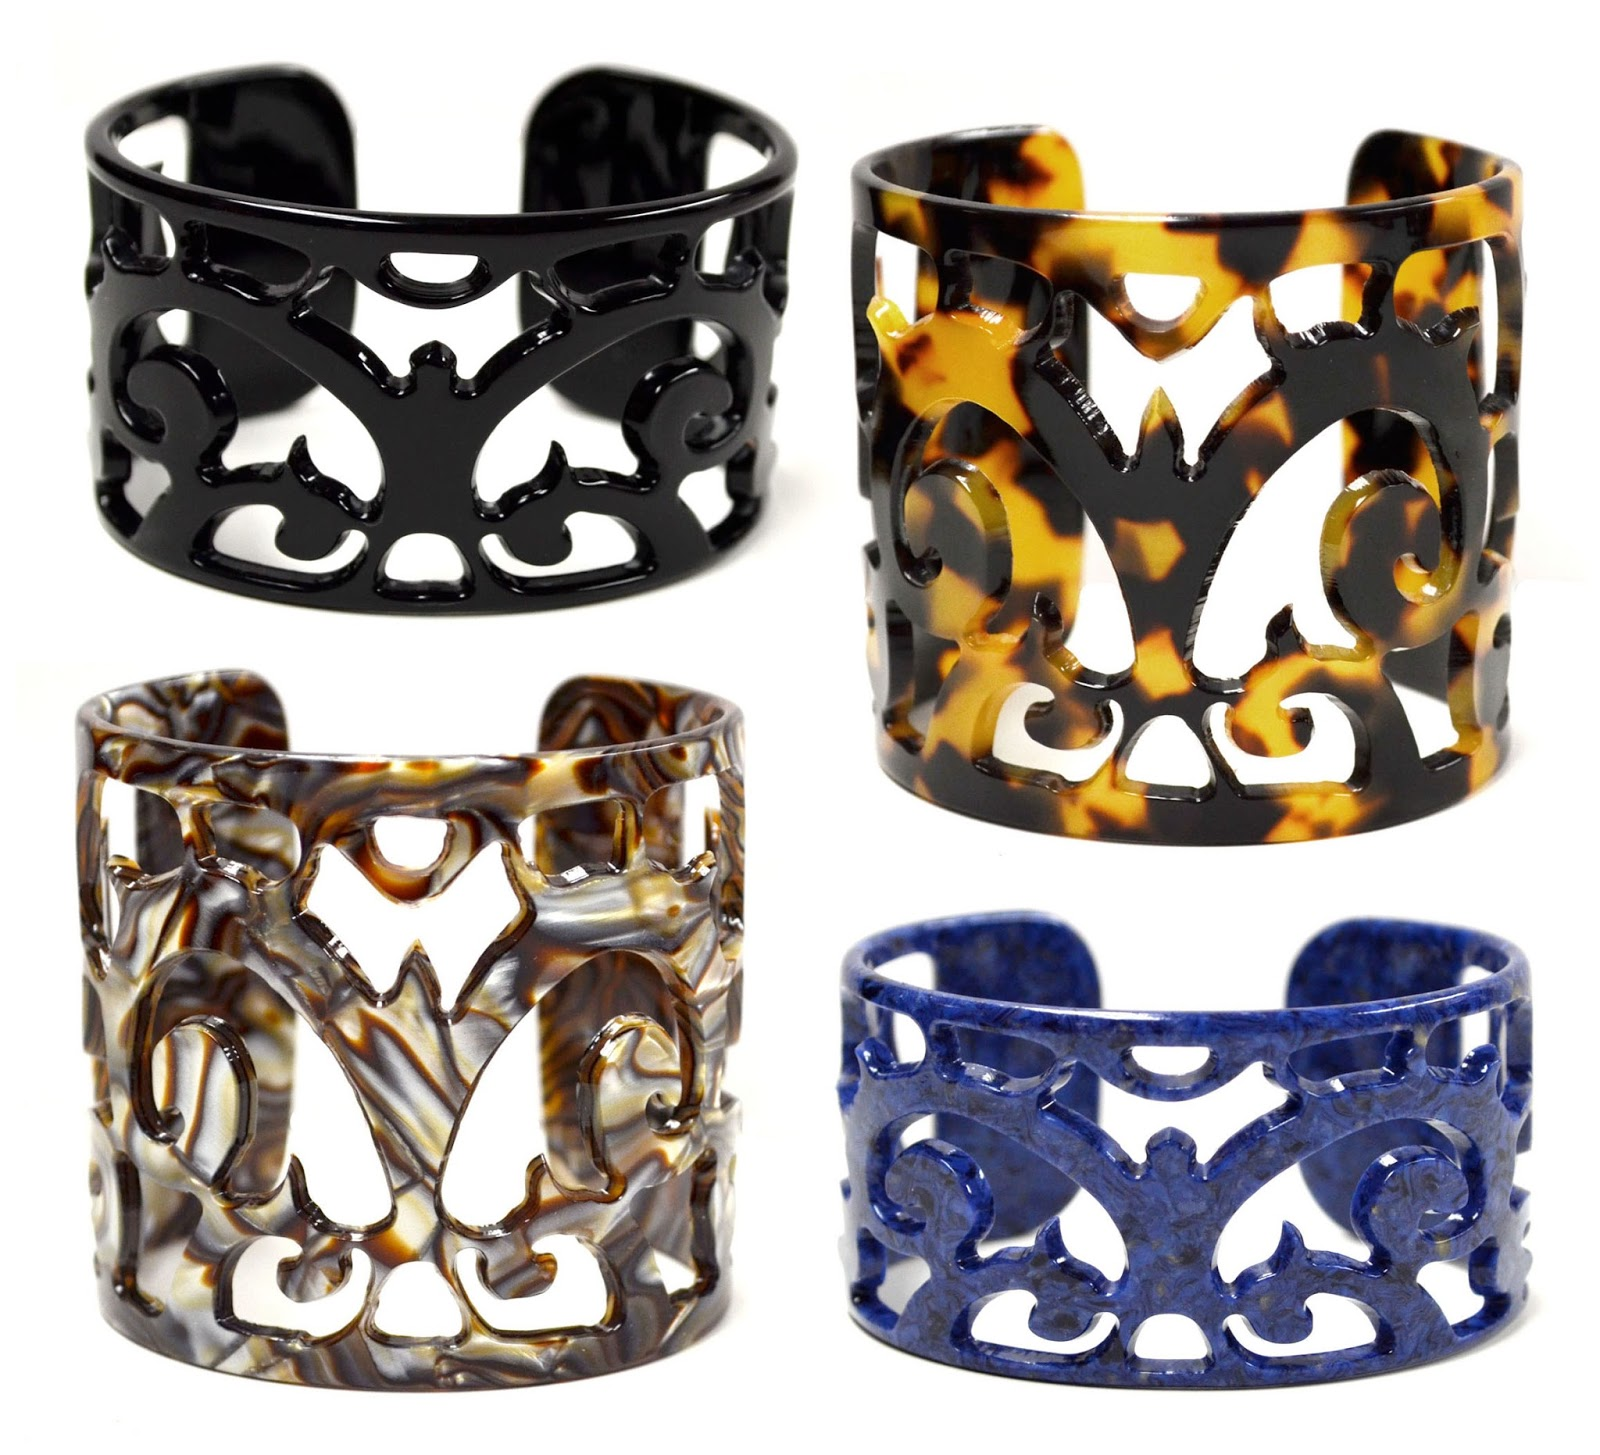 Lisa august lisa august bracelets 2013 for Bellissima jewelry moschitto designs